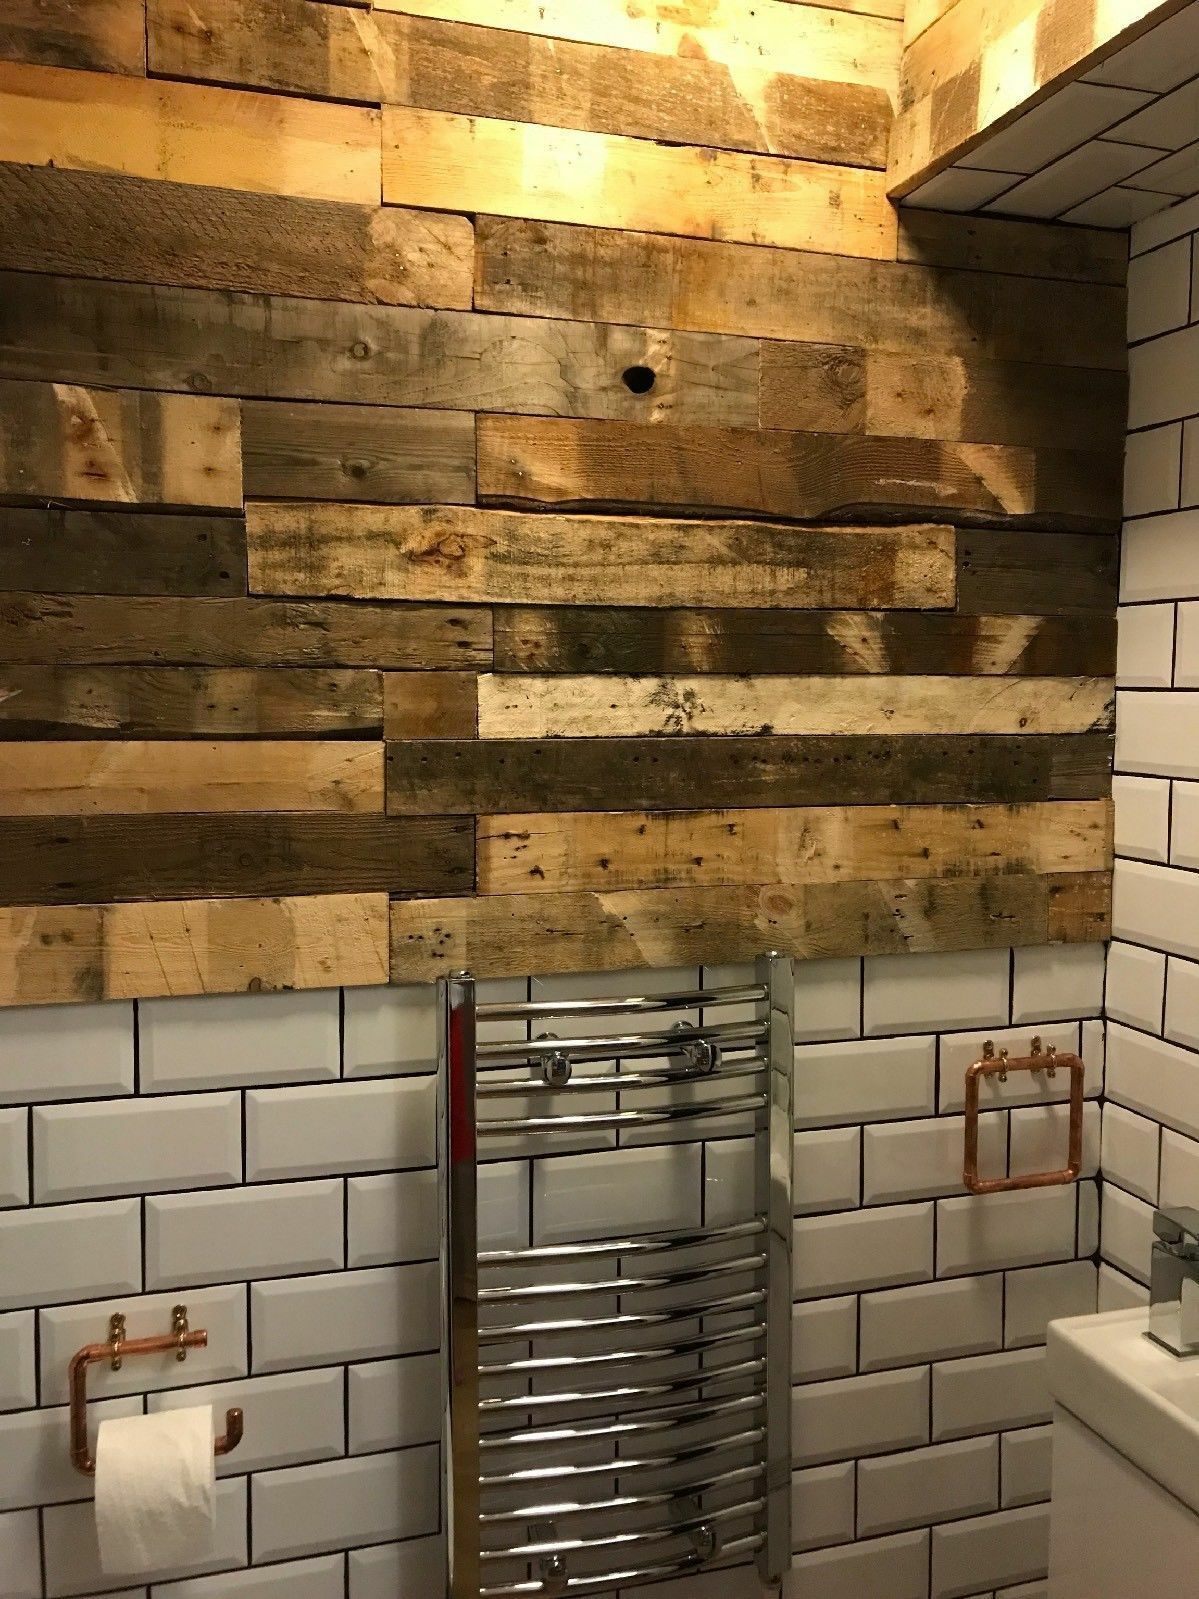 Reclaimed pallet wood wall cladding picclick uk for Reclaimed pallet wood wall